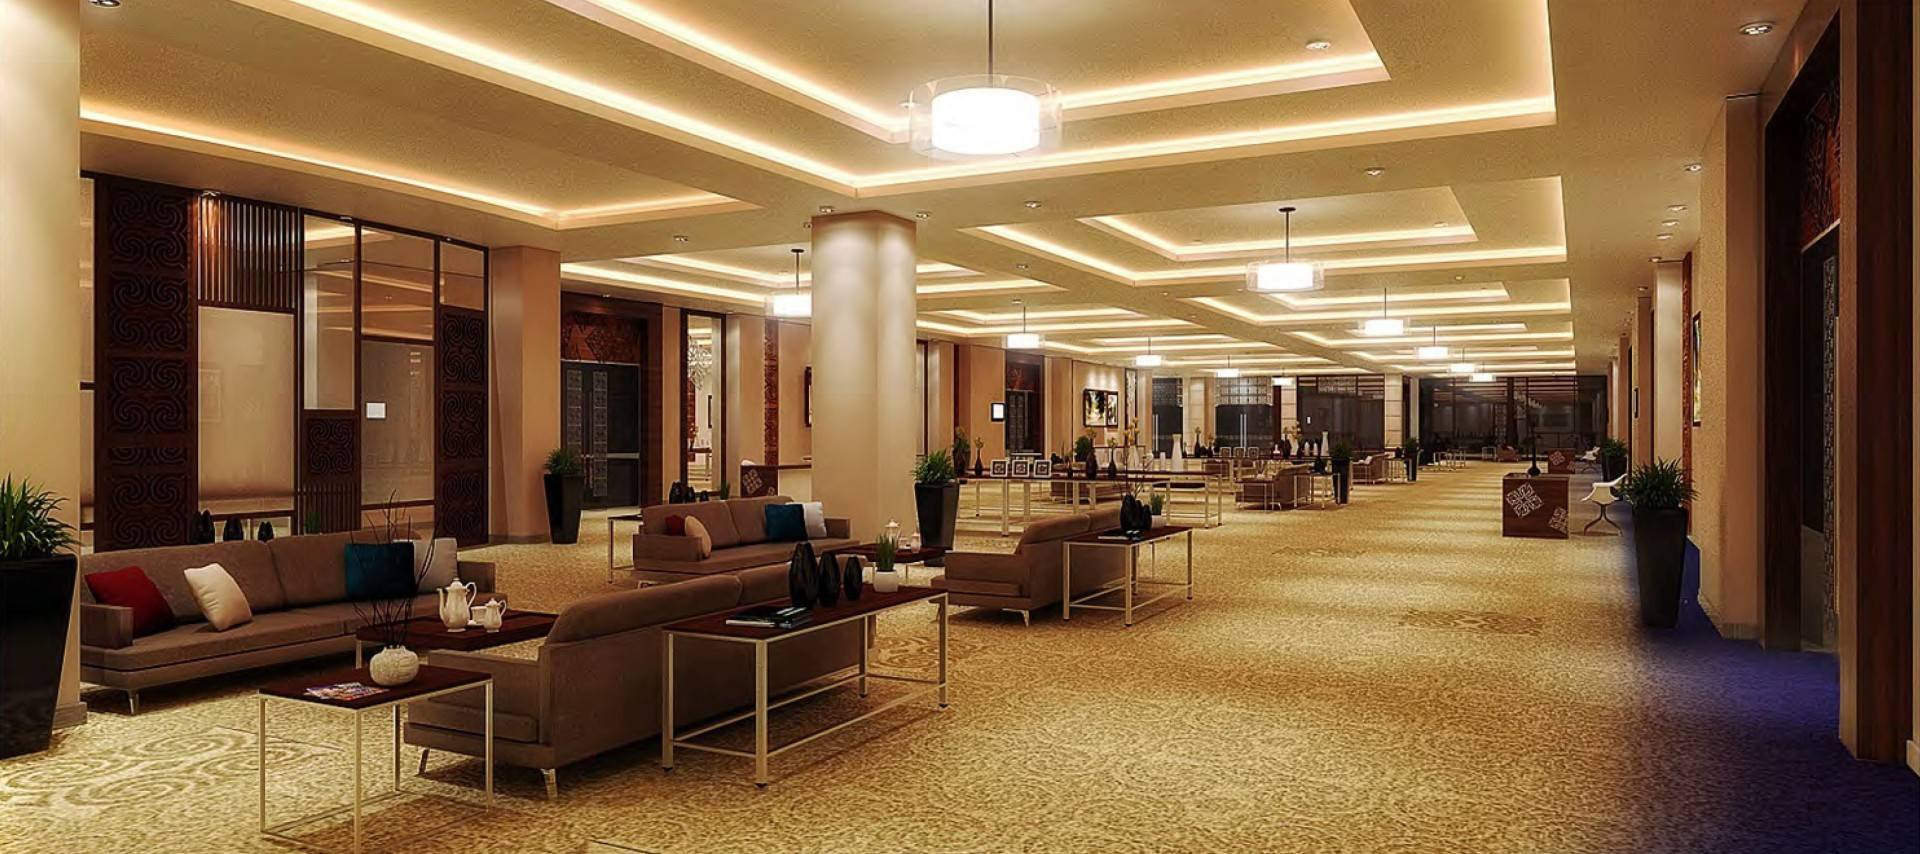 Mul I.d Design Consultant Four Points Sheraton At Makassar South Sulawesi South Sulawesi Prefunction-Ballroom Modern  3869